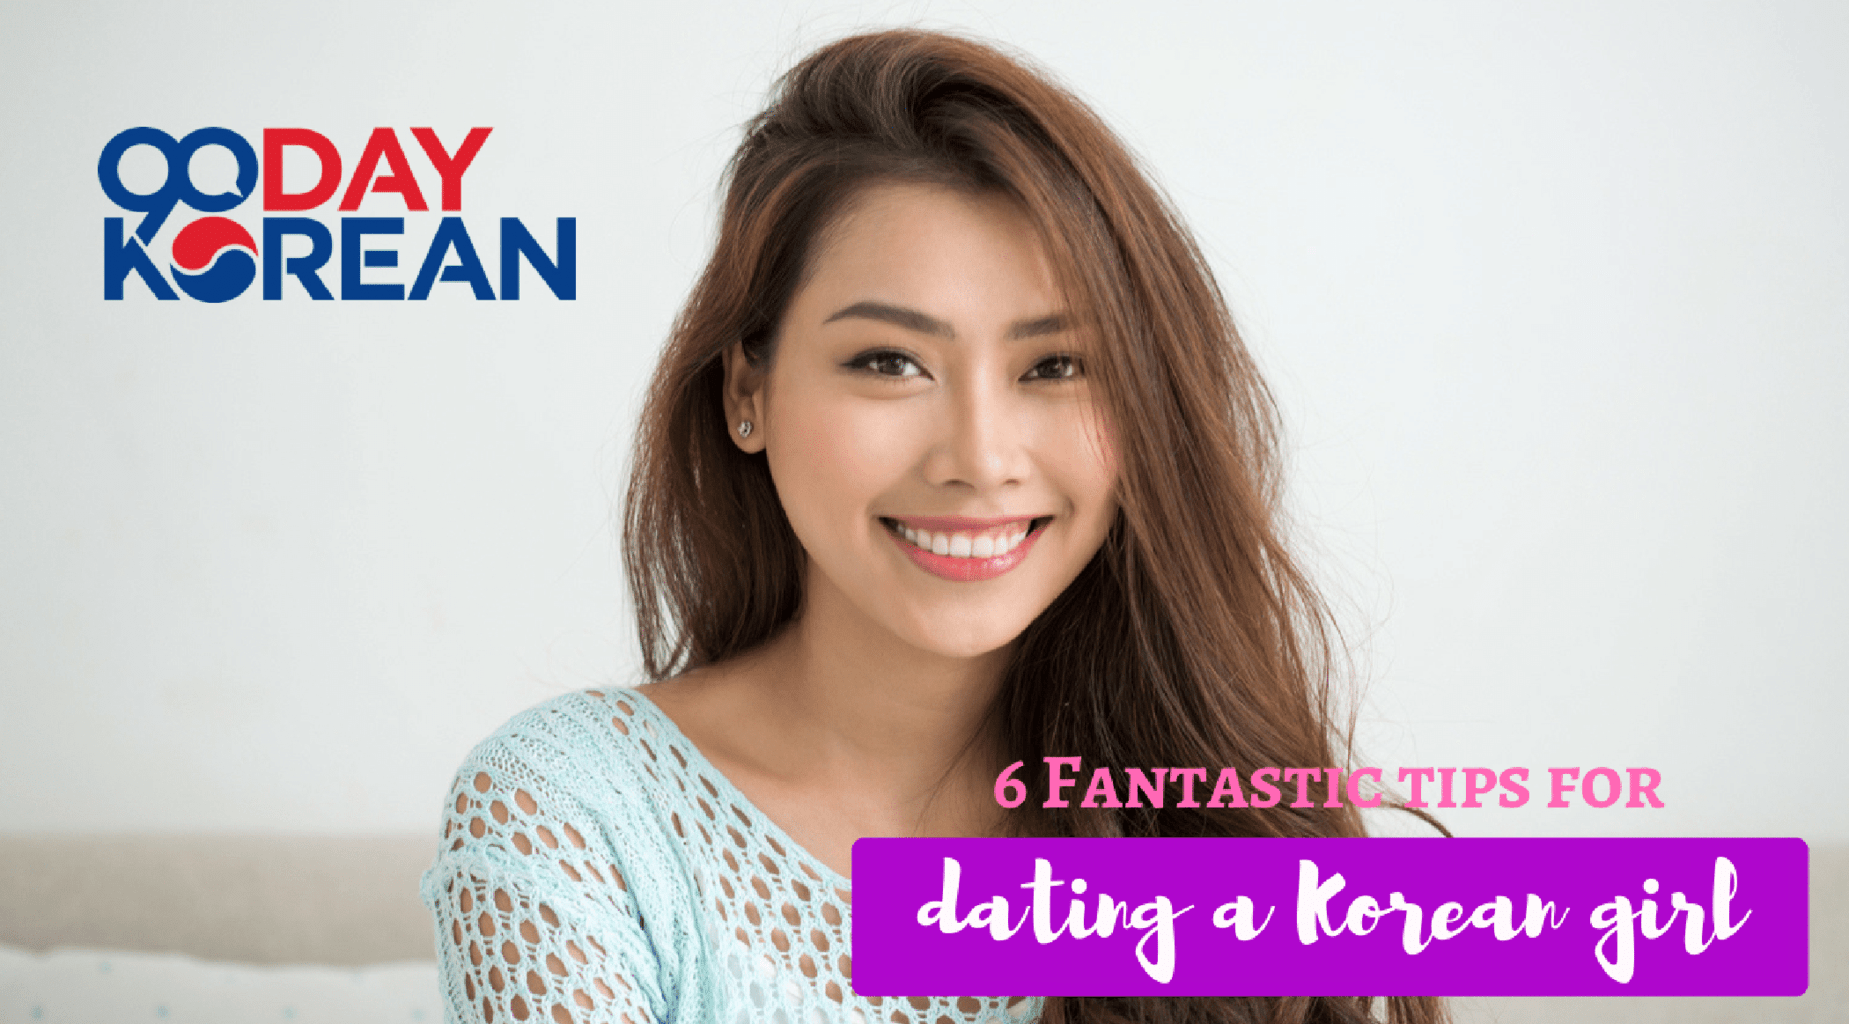 How to dating with korean girl